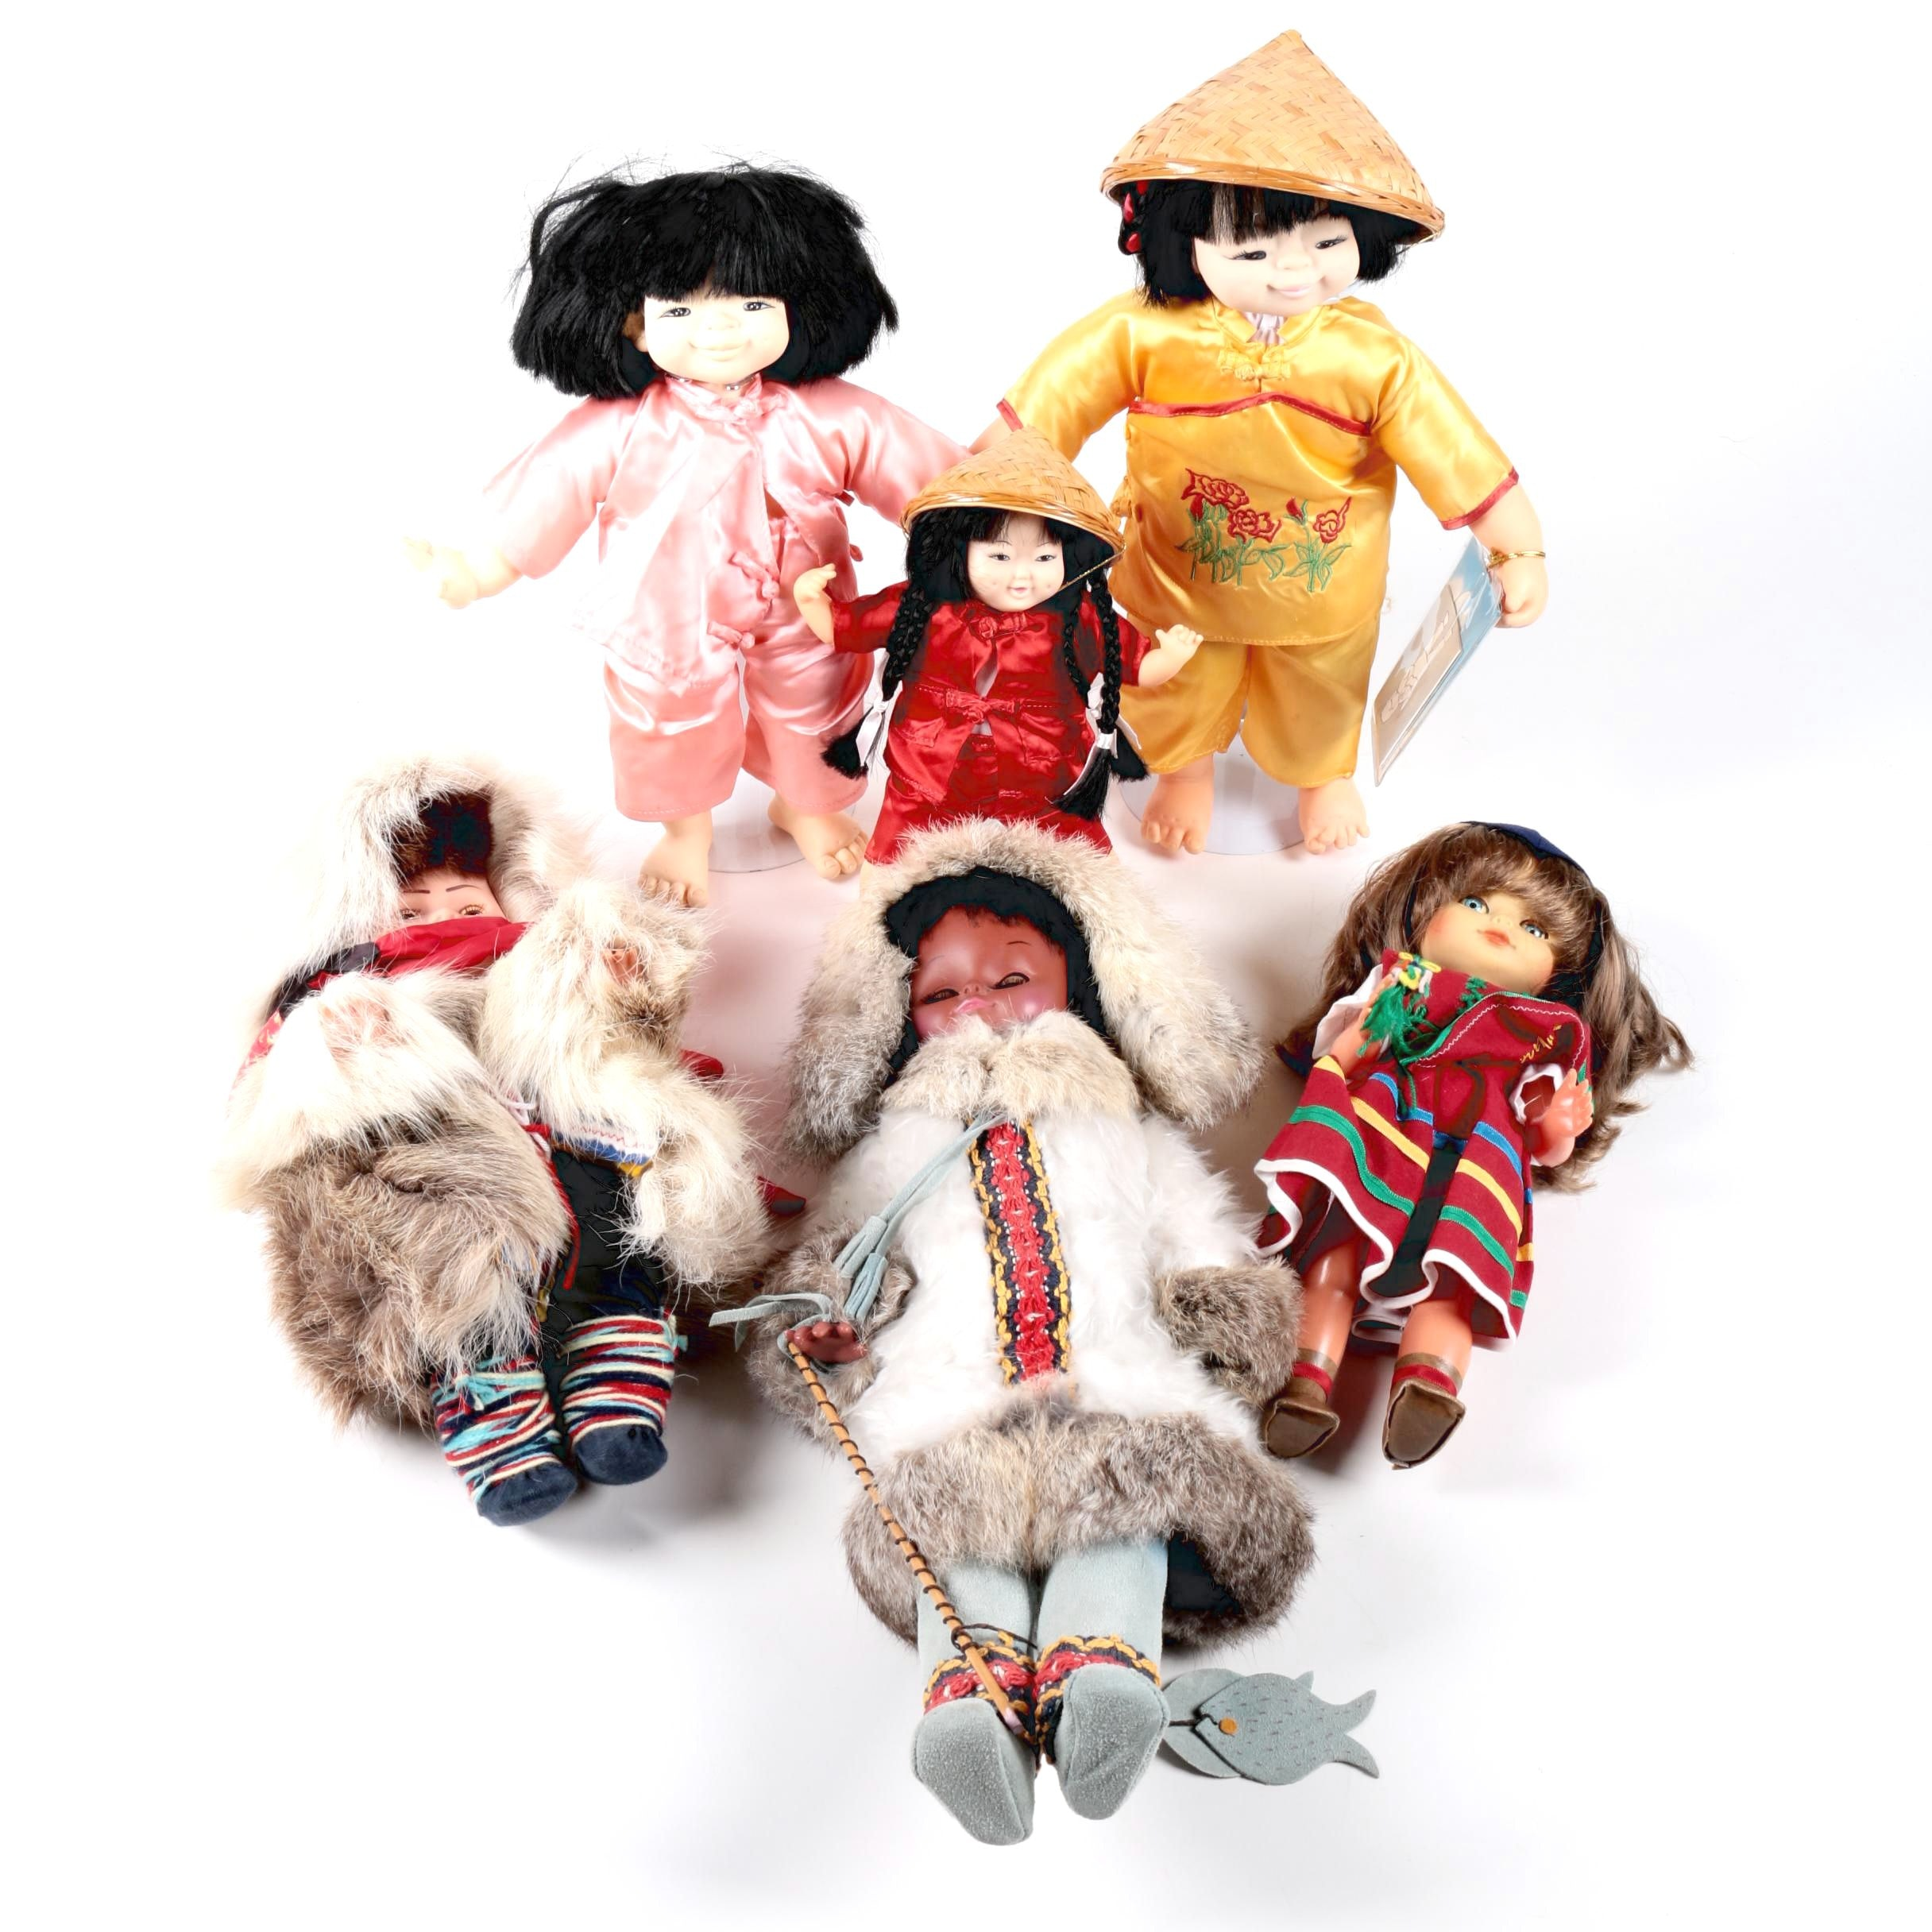 Assortment of Cultural Dolls